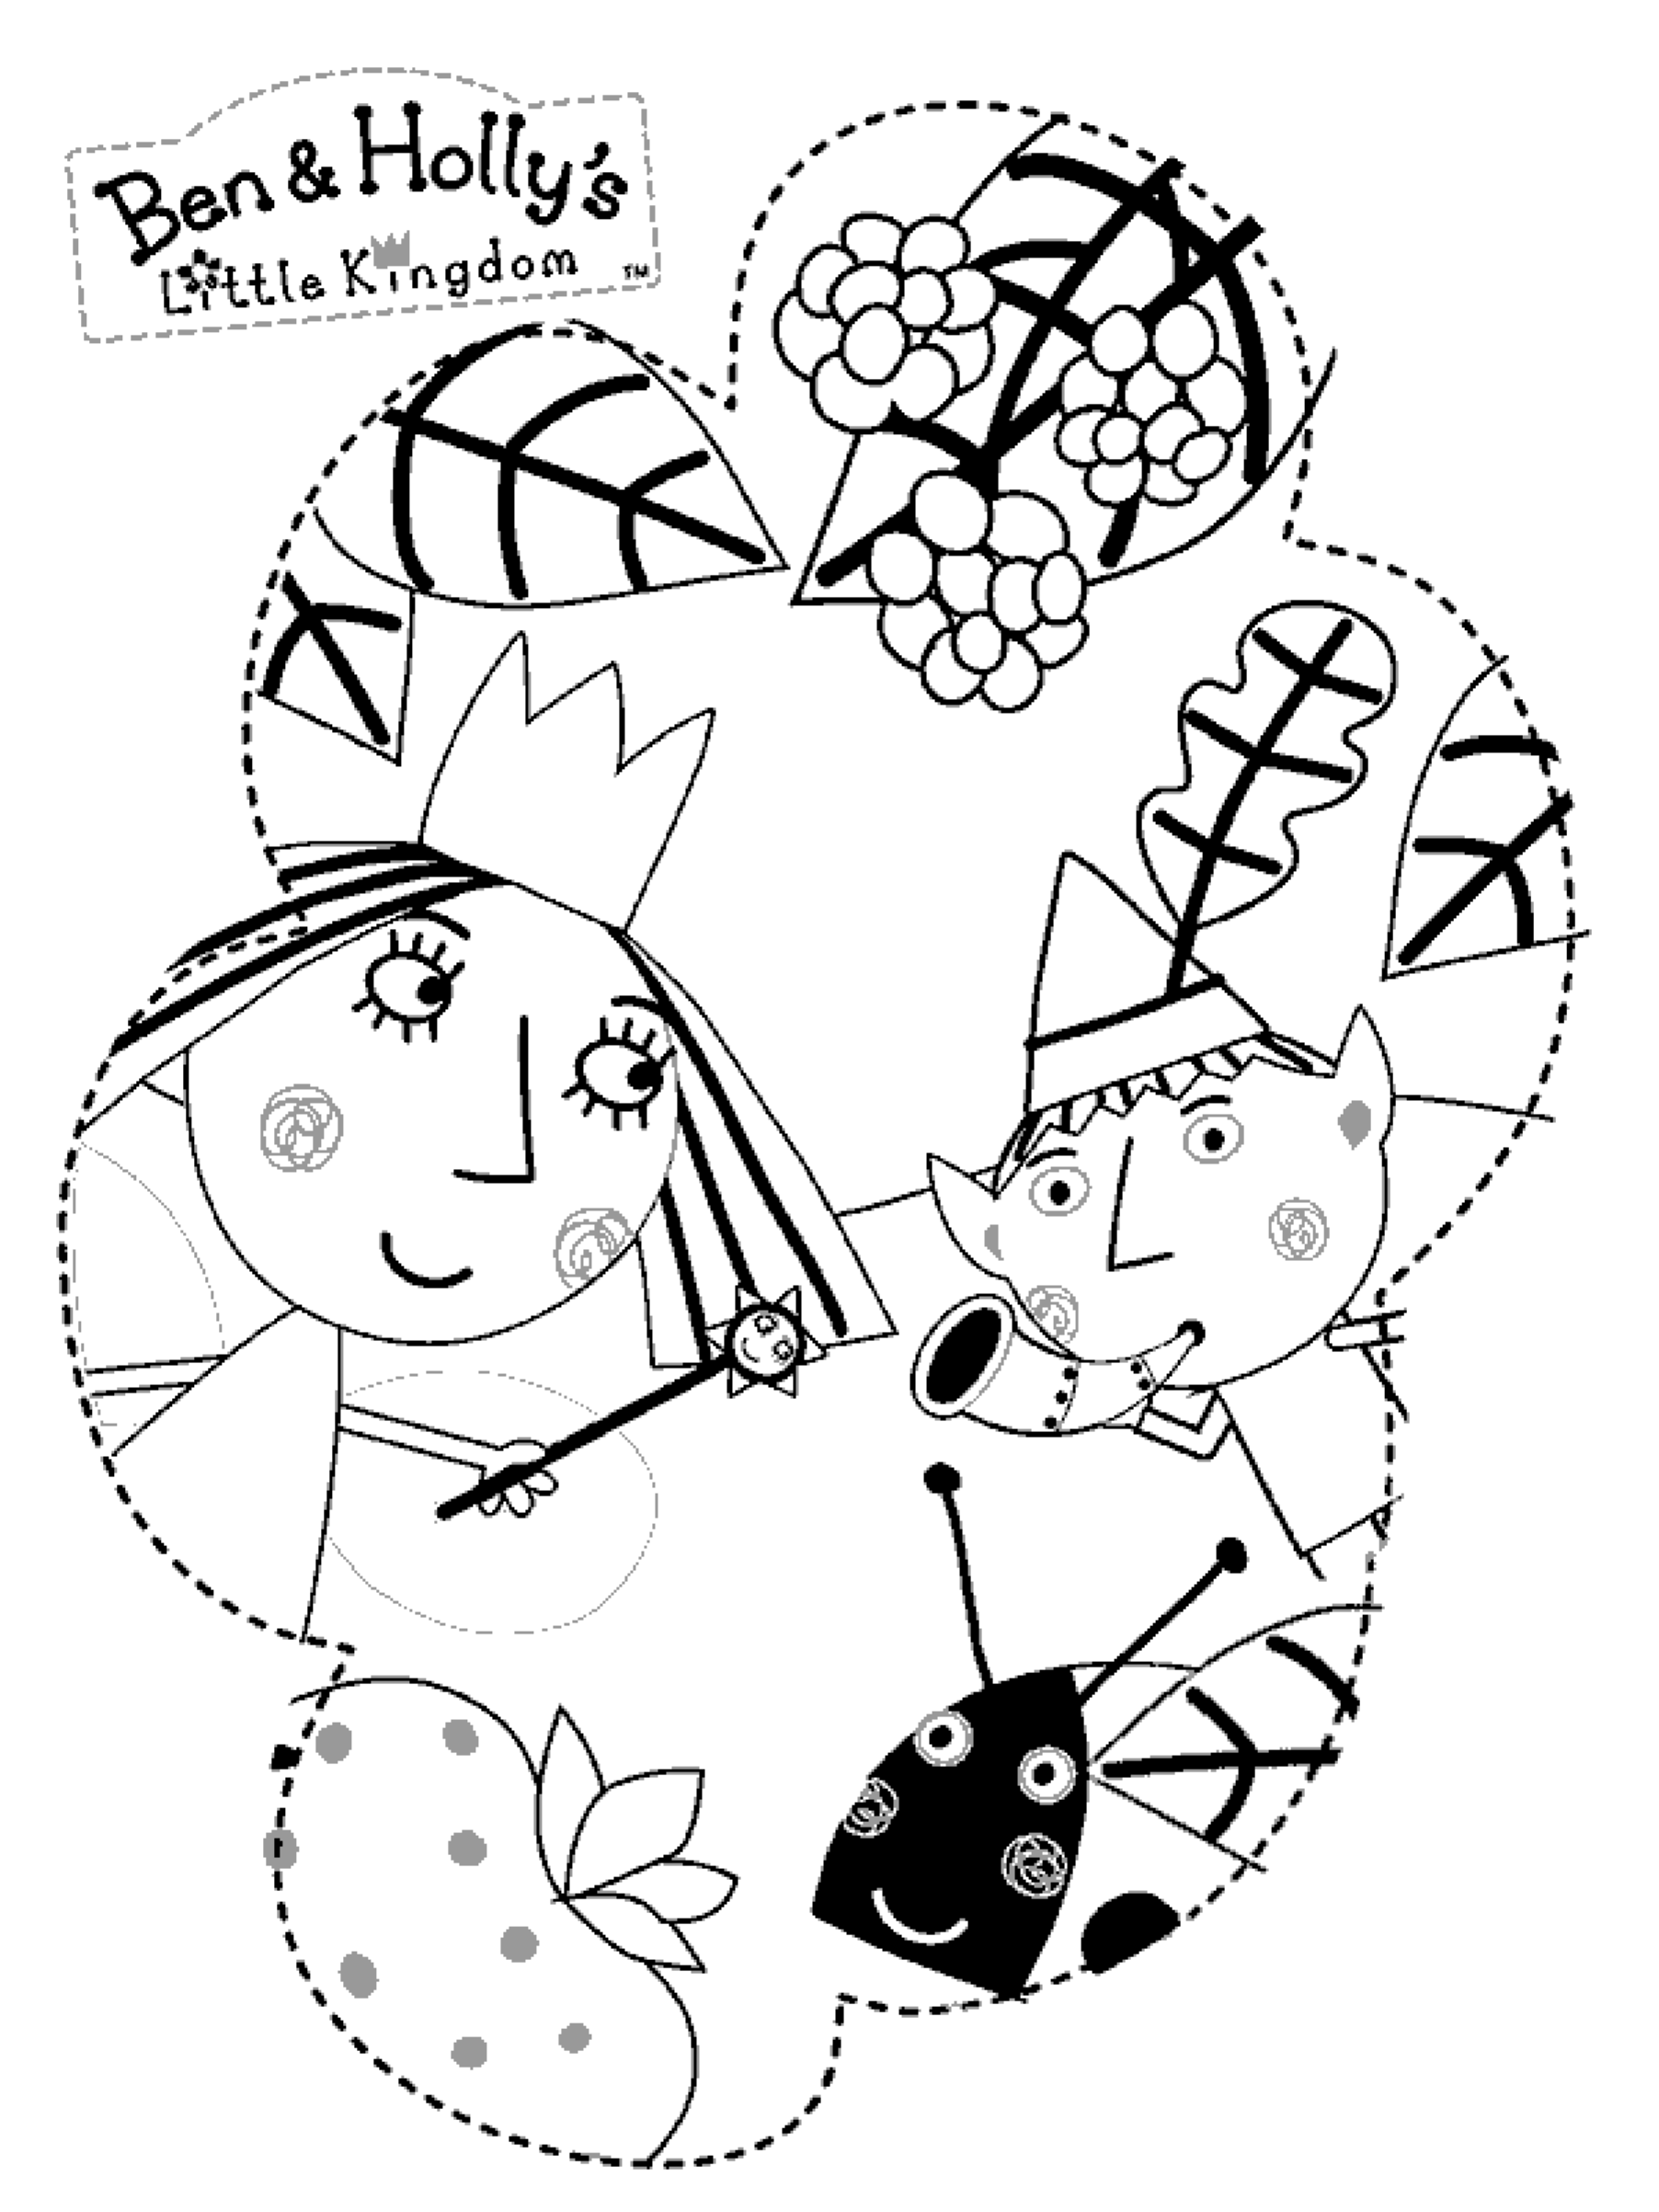 Ben And Holly Printable Coloring Pages Free Printable Ben And Holly